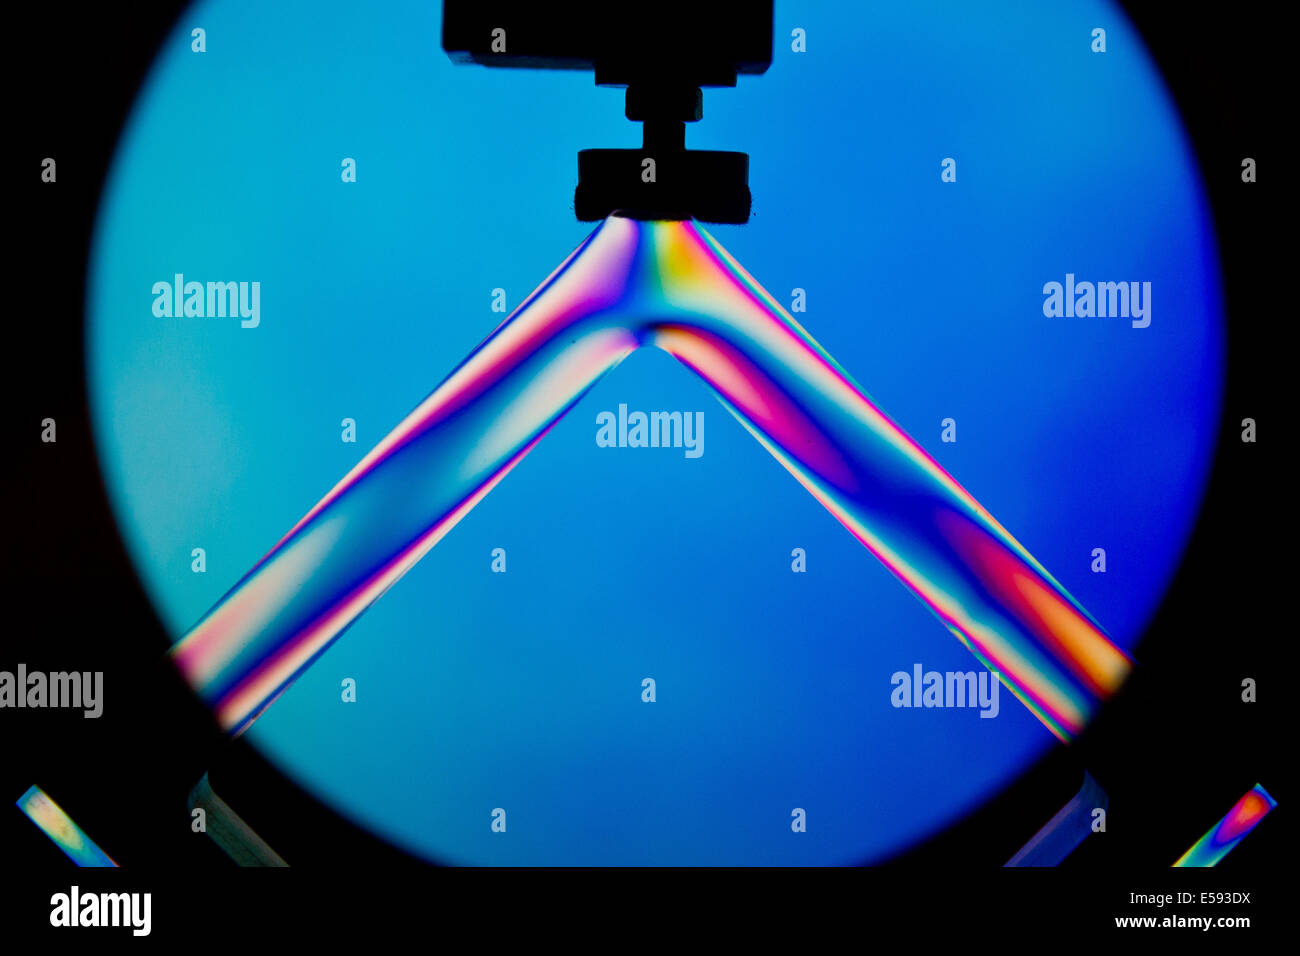 Nuremberg, Germany. 23rd July, 2014. In an experiment visitors can see color spectrums on a piece of plexiglass - Stock Image